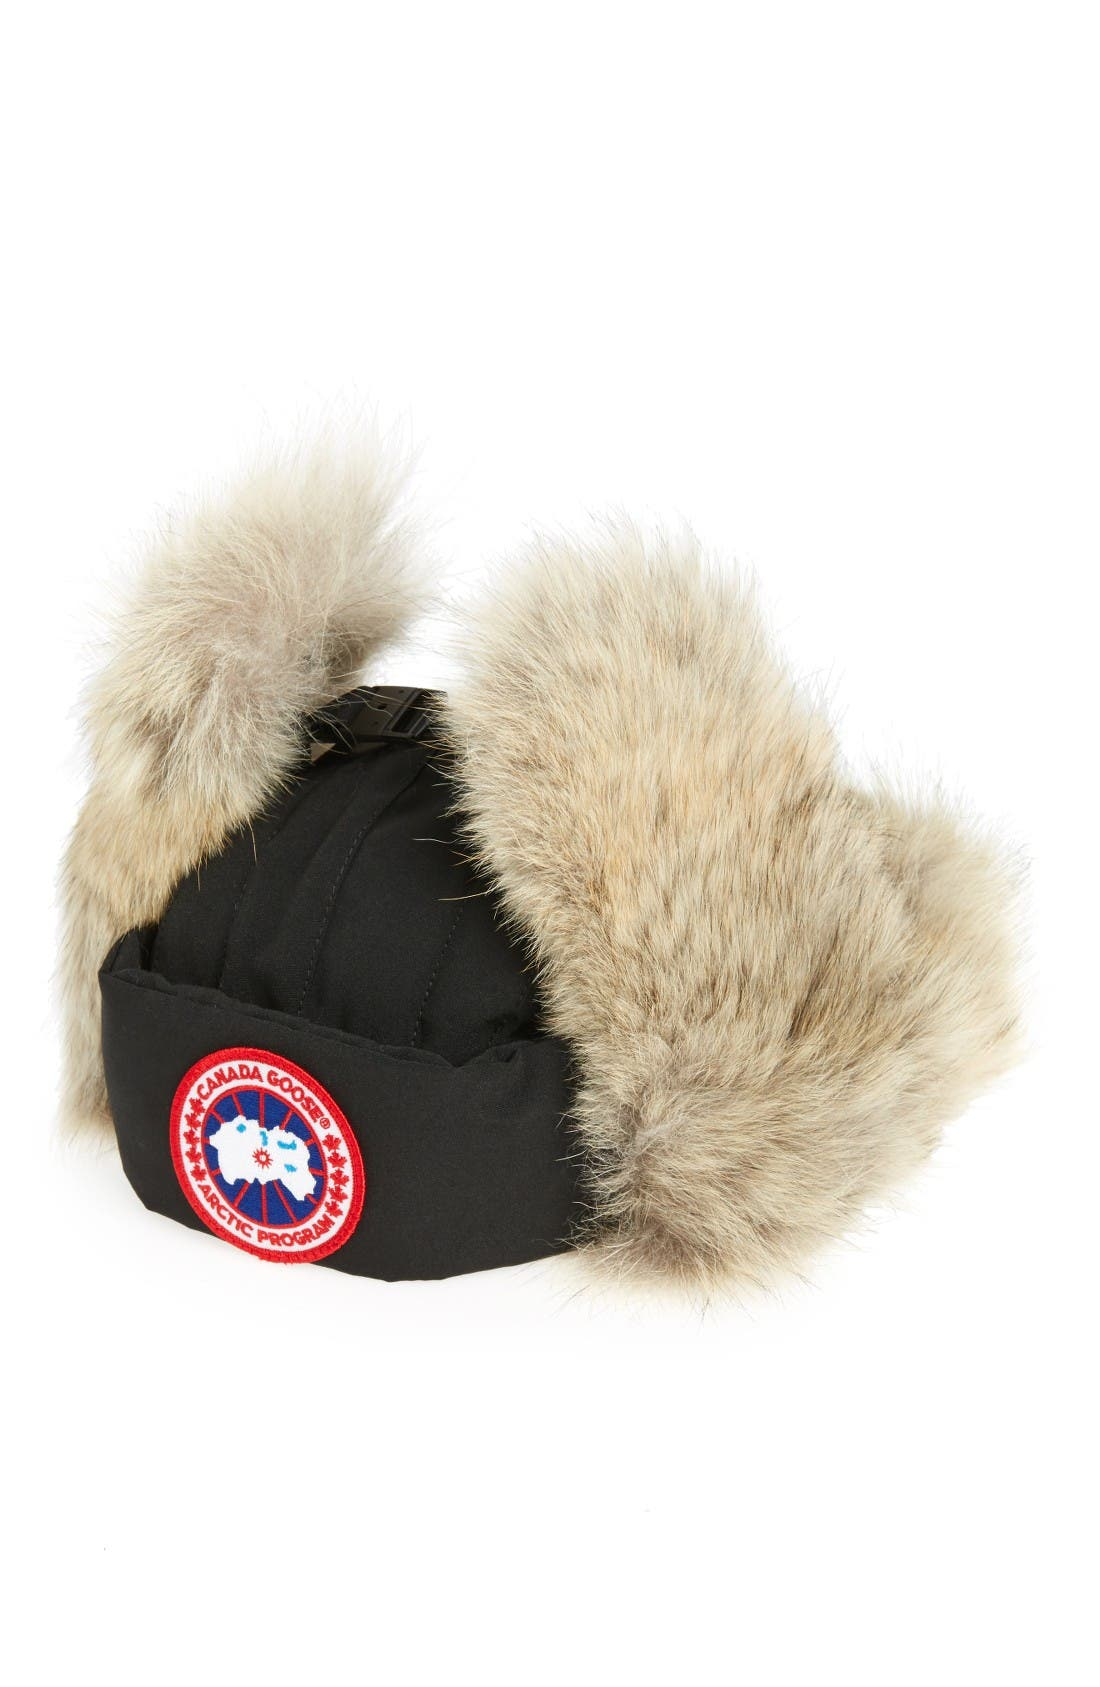 Alternate Image 1 Selected - Canada Goose Down Fill Aviator Hat with Genuine Coyote Fur Trim